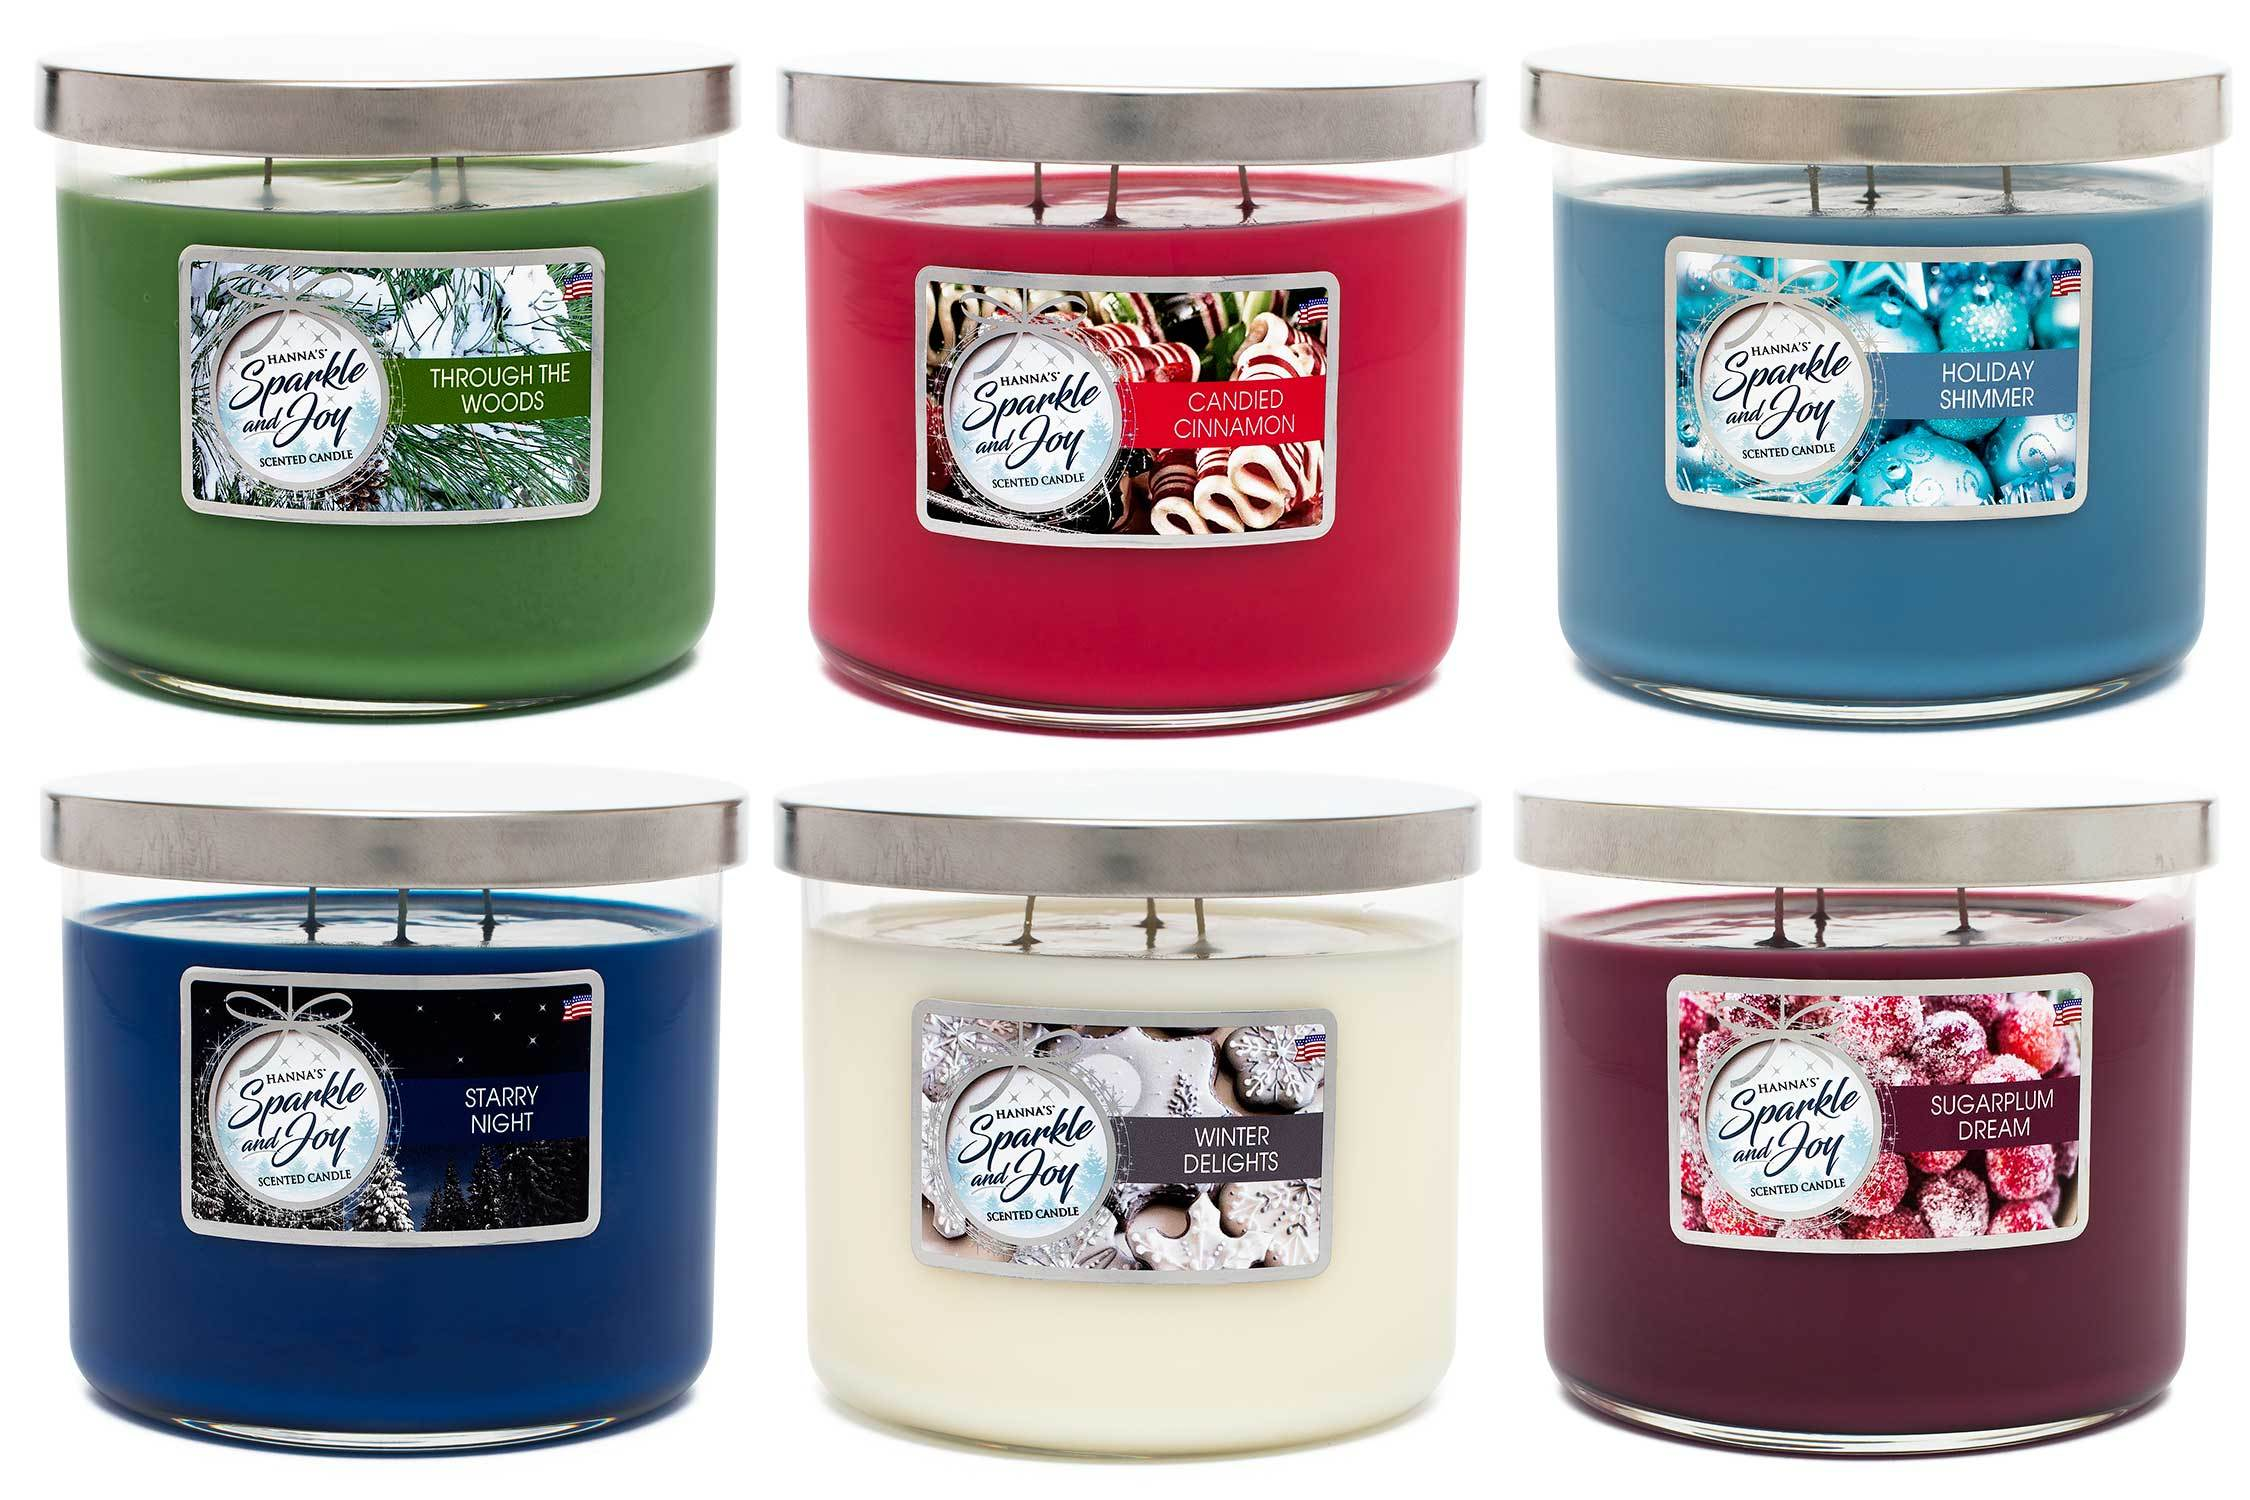 Sugarplum Dream Scented Large 3 wick Candle - Candlemart.com